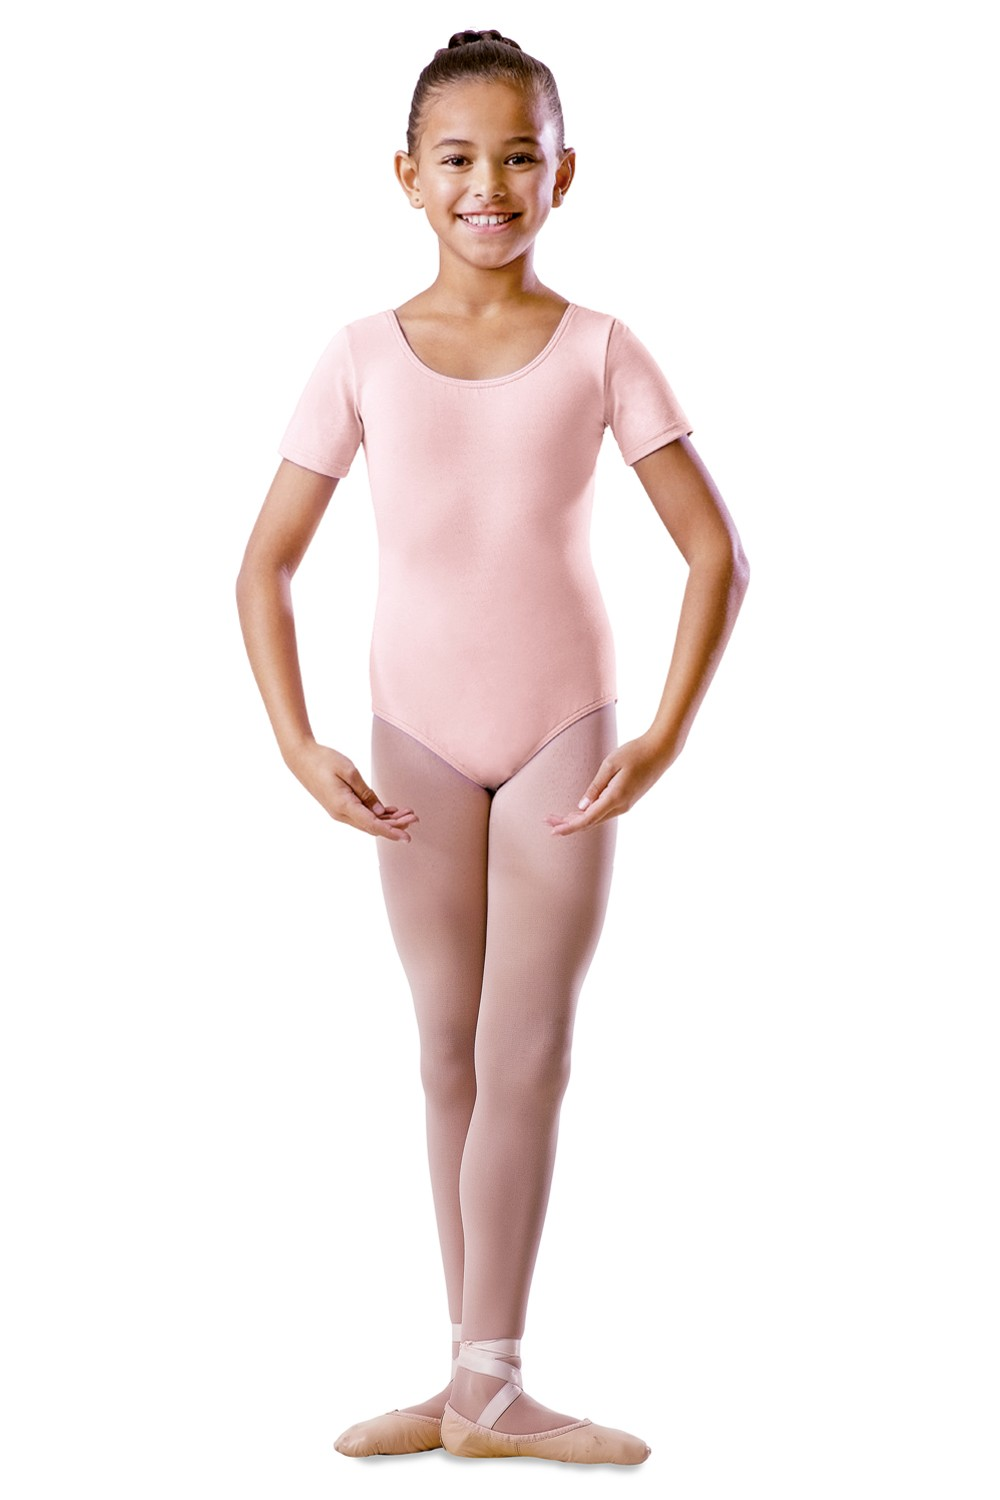 Children's Dance Uniforms